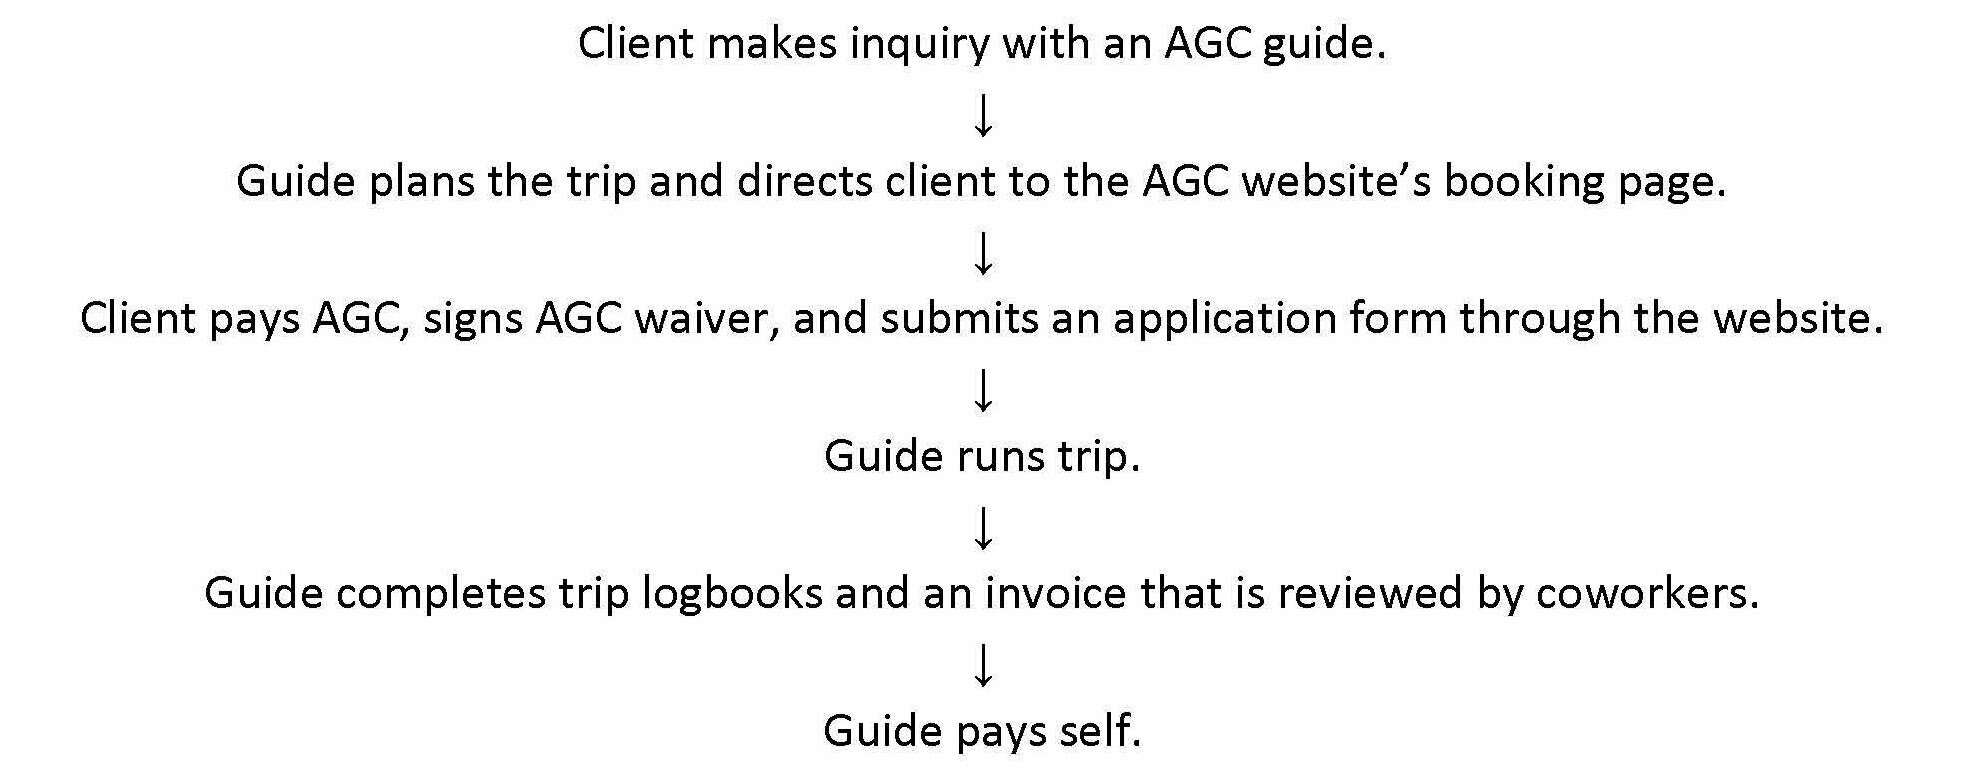 The workflow for an AGC trip starts with interaction between client and guide and booking through the AGC website.